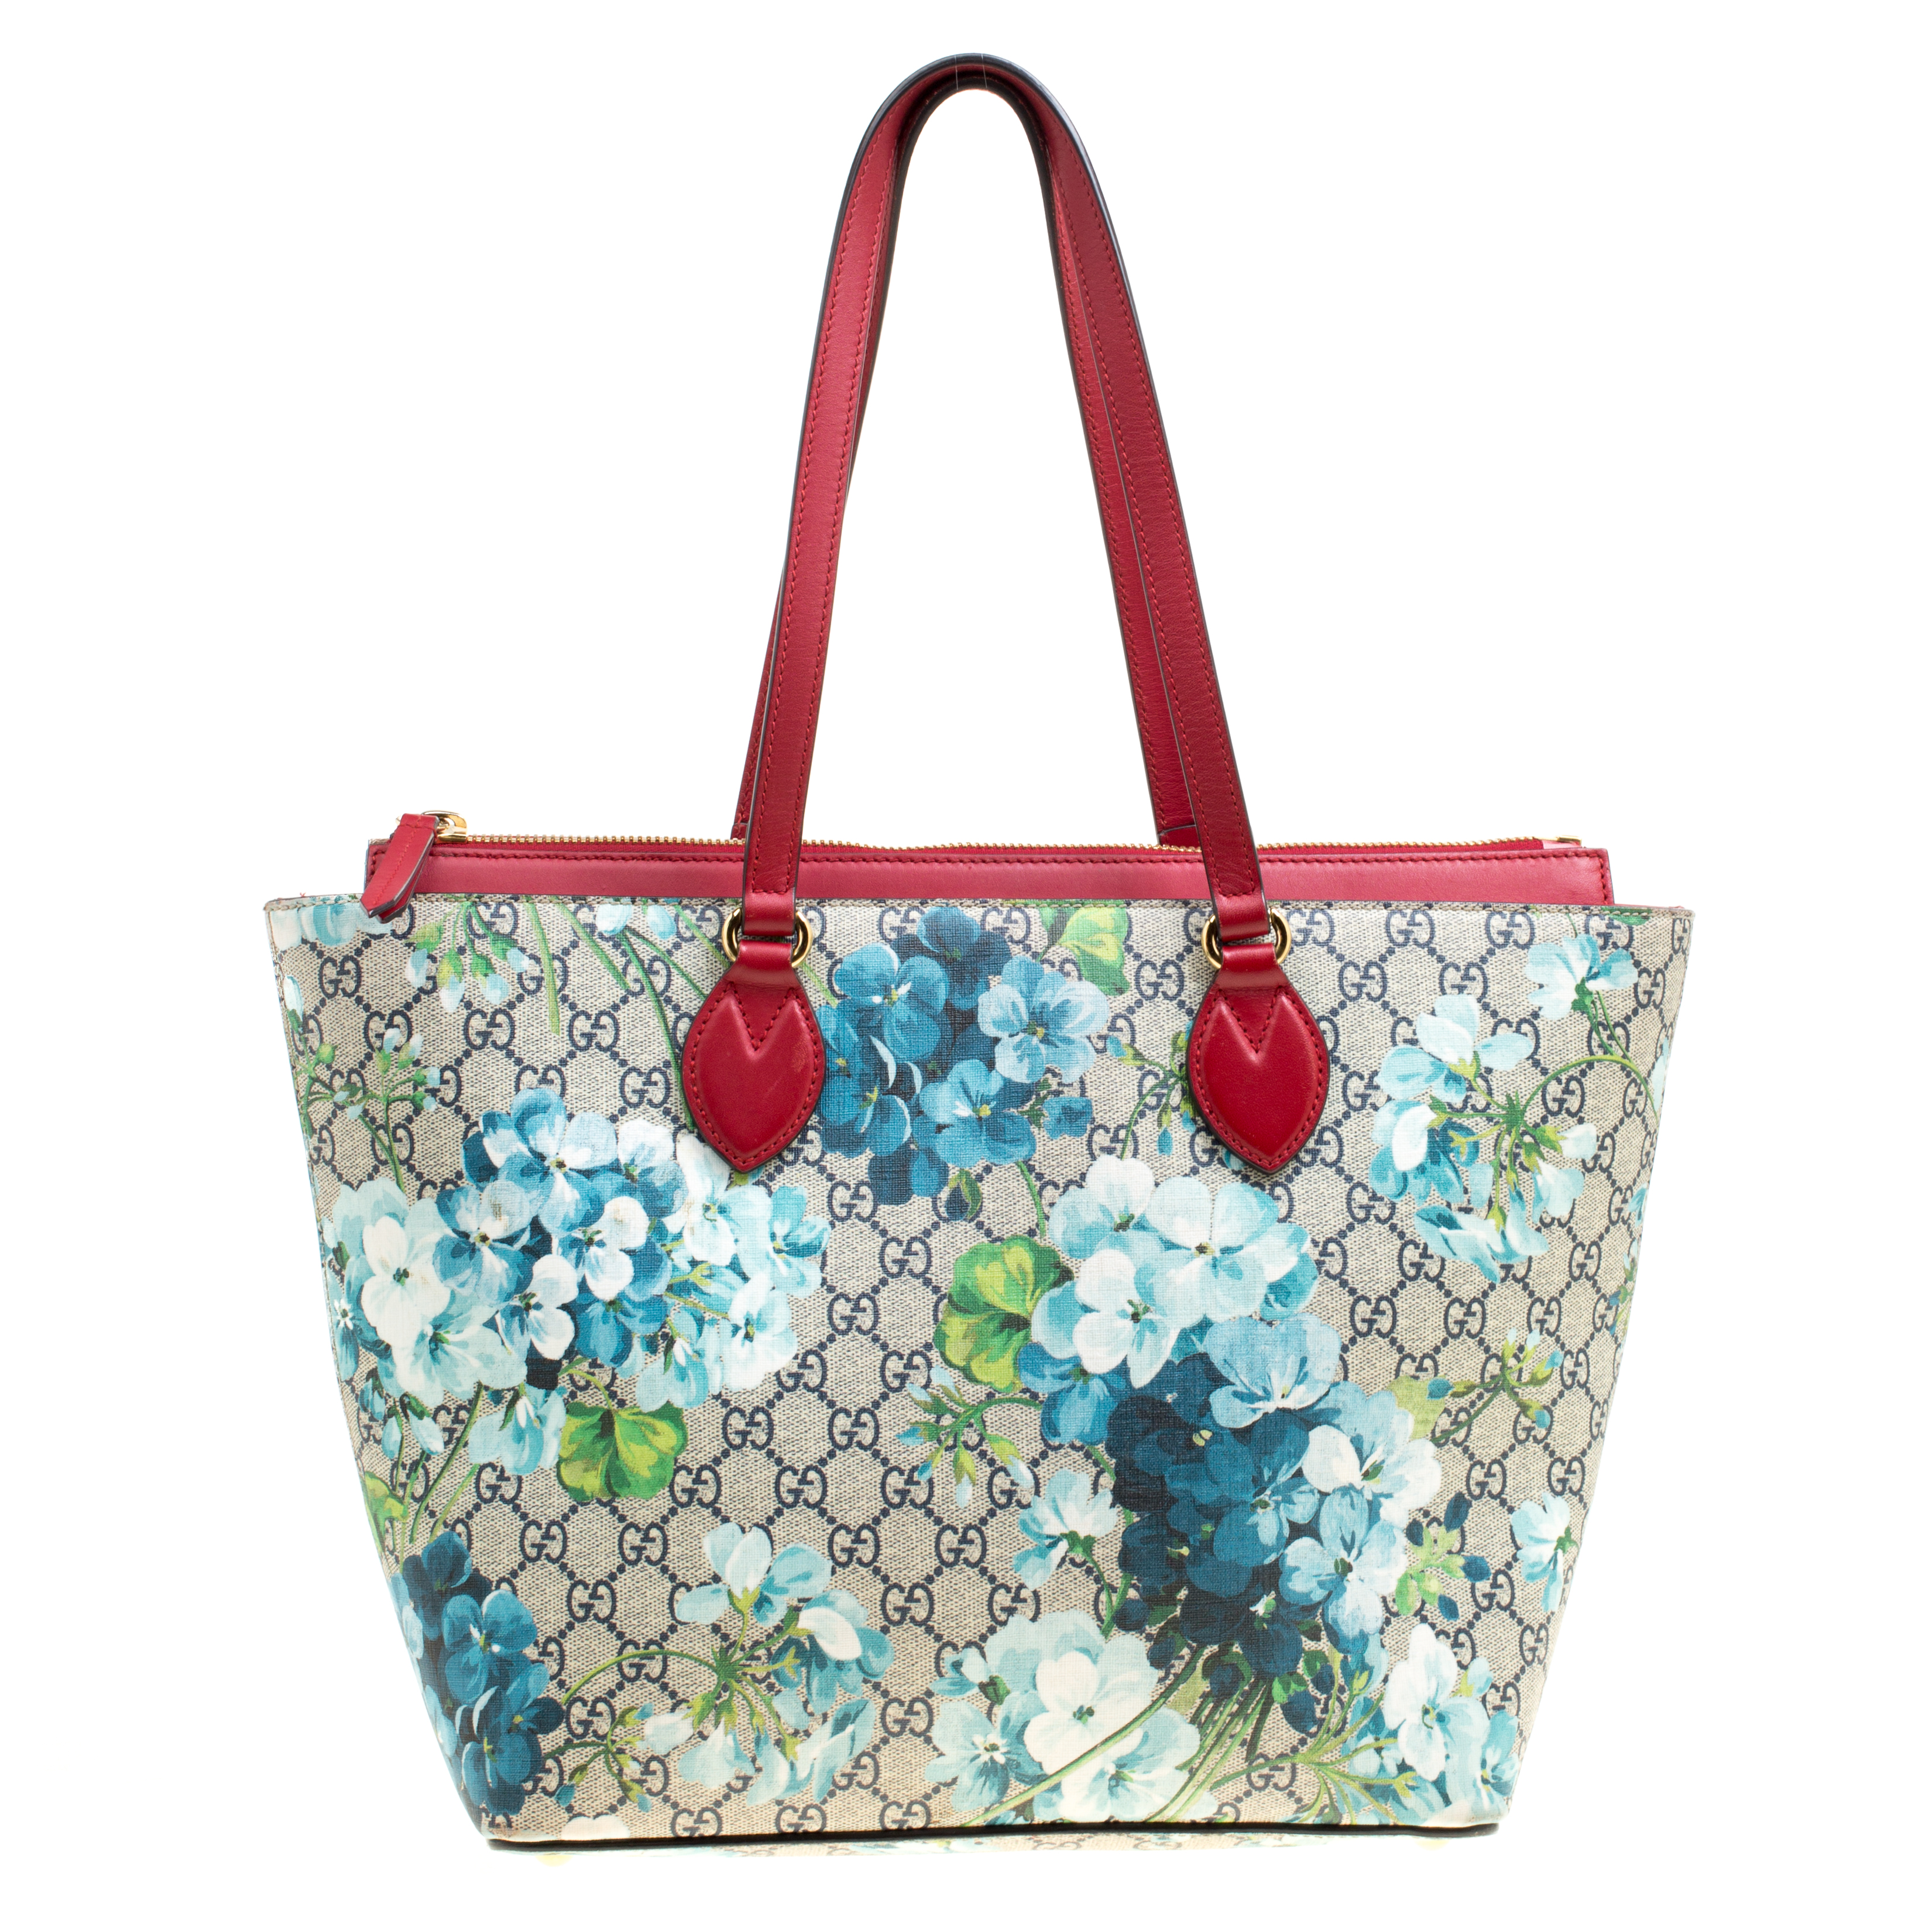 90038e4cd29 Buy Gucci Multicolor Red Bloom Print Supreme Canvas and Leather ...